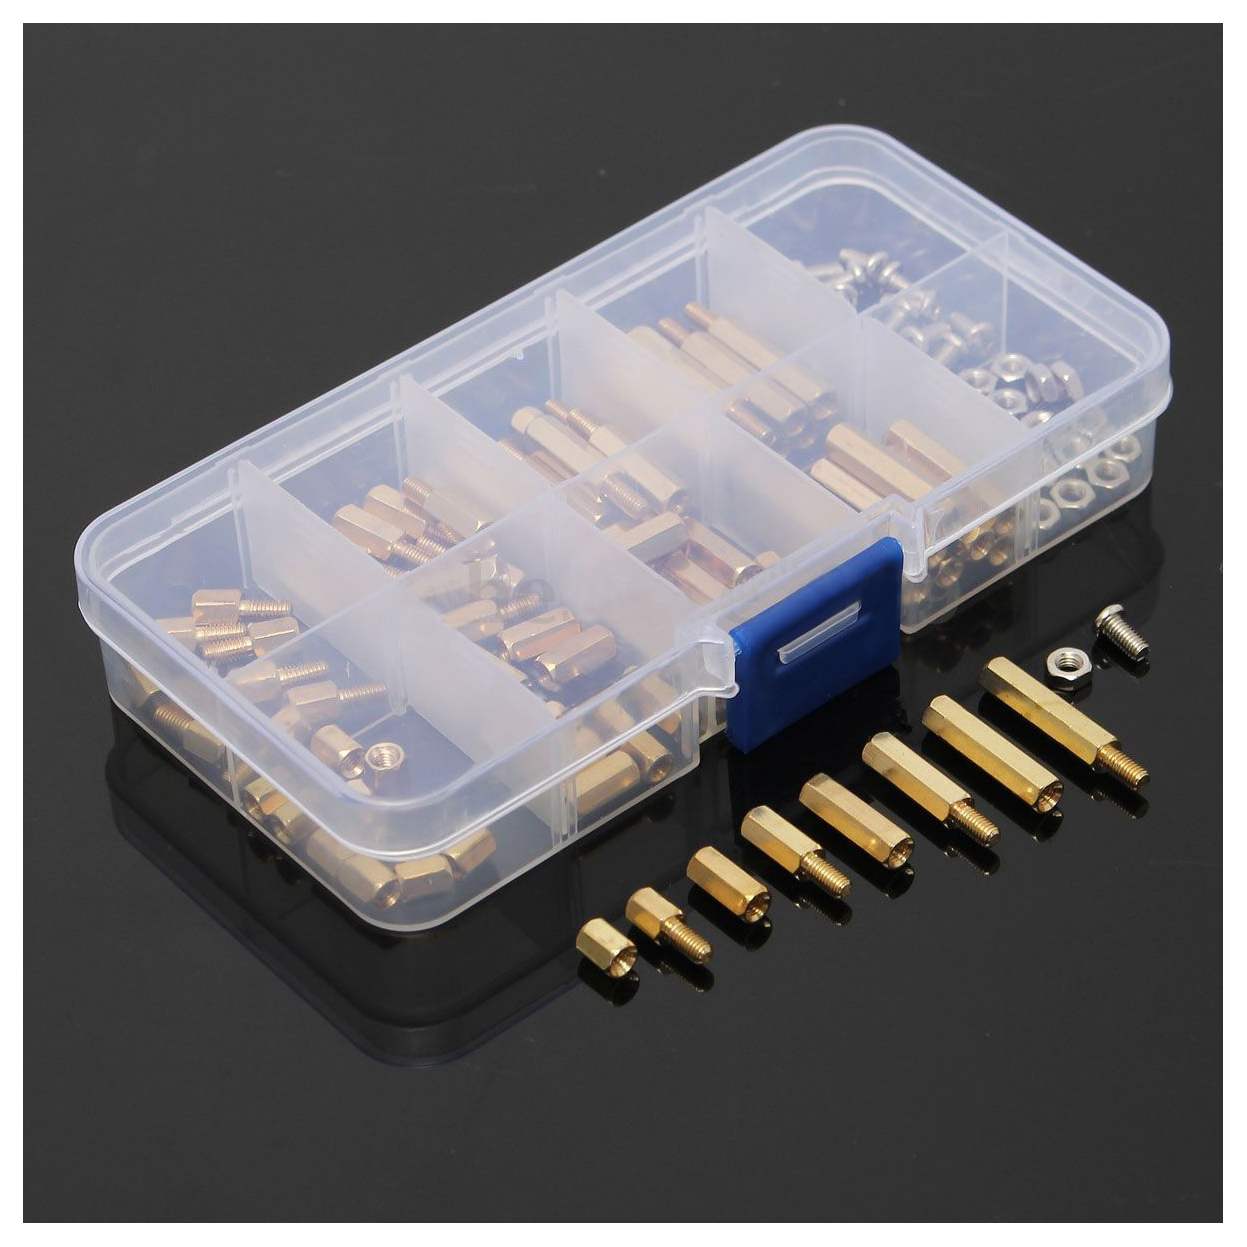 120Pcs M3 Male Female Brass Standoff Spacer PCB Board Hex Screws Nut Assortment thgs 120pcs m3 male female brass standoff spacer pcb board hex screws nut assortment